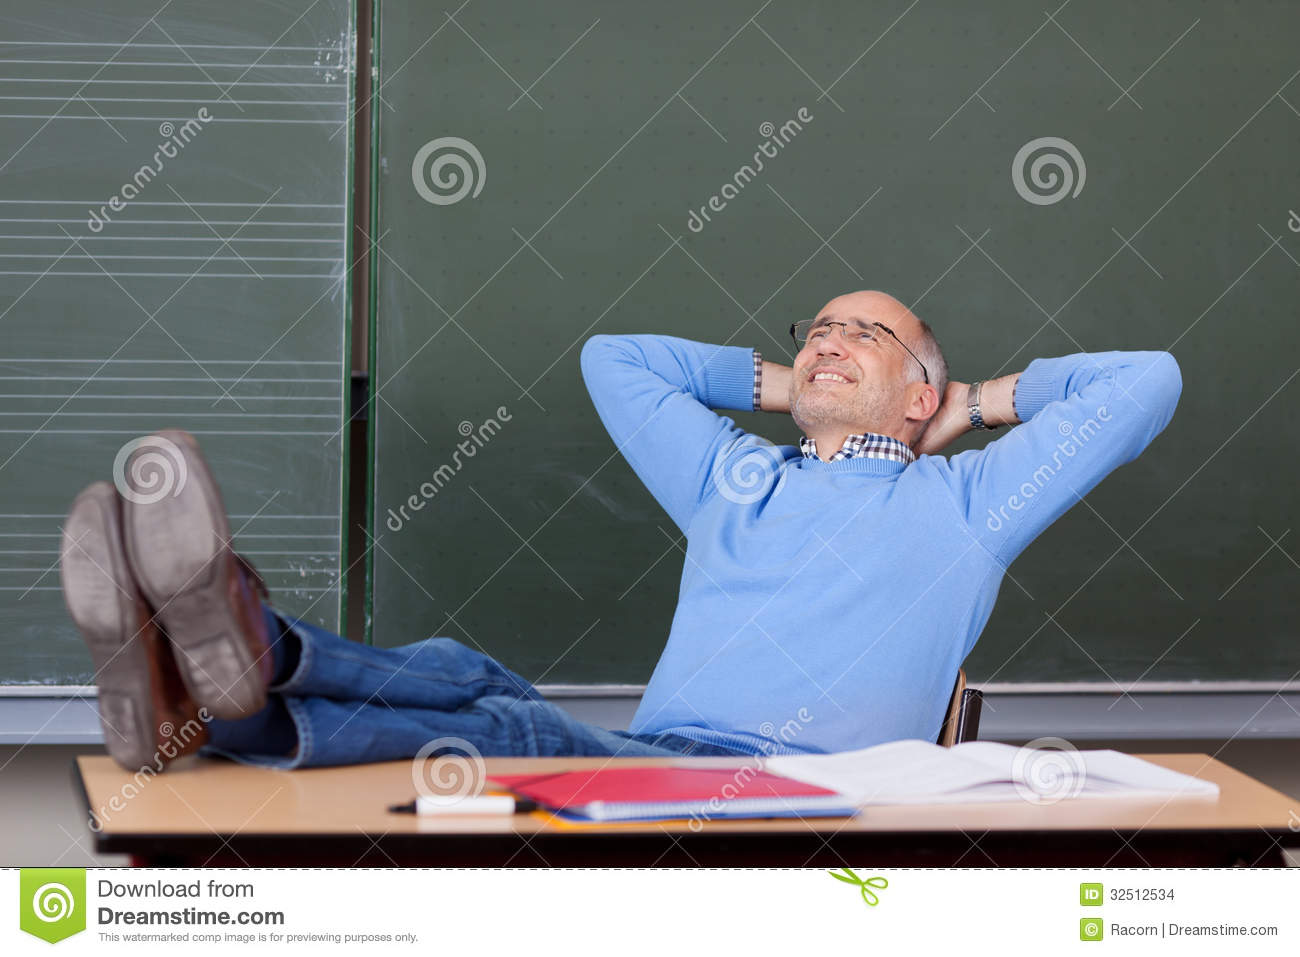 Professor With Hands Behind Head Looking Up At Desk Stock